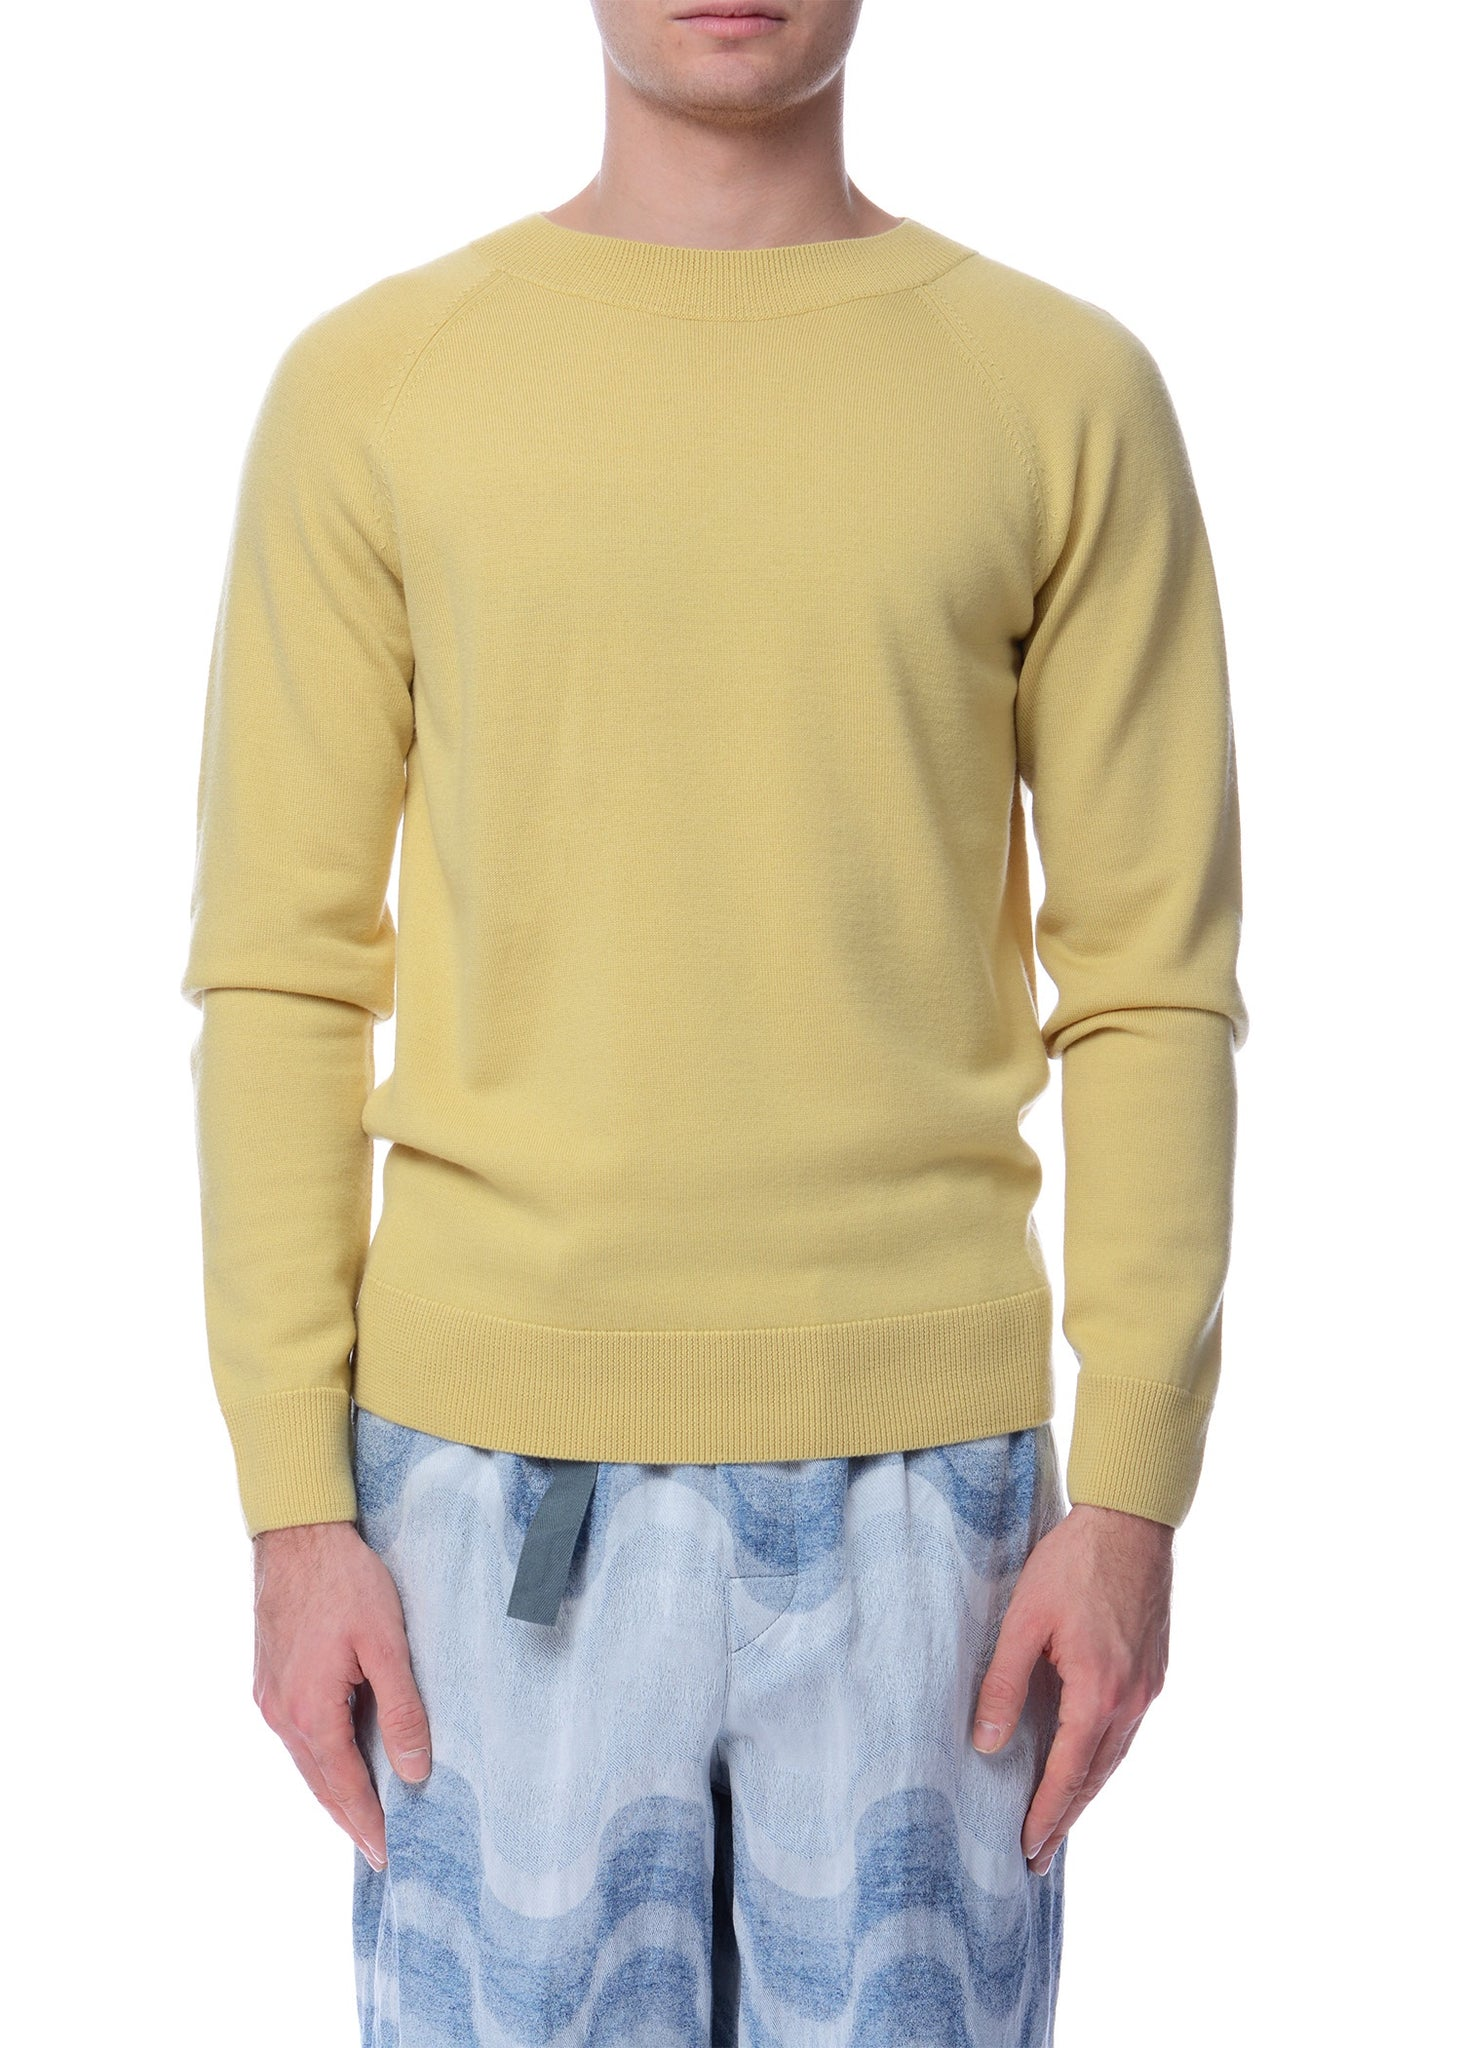 Pull à Manches Raglan Jaune|Yellow Raglan Sleeves Crewneck Sweater